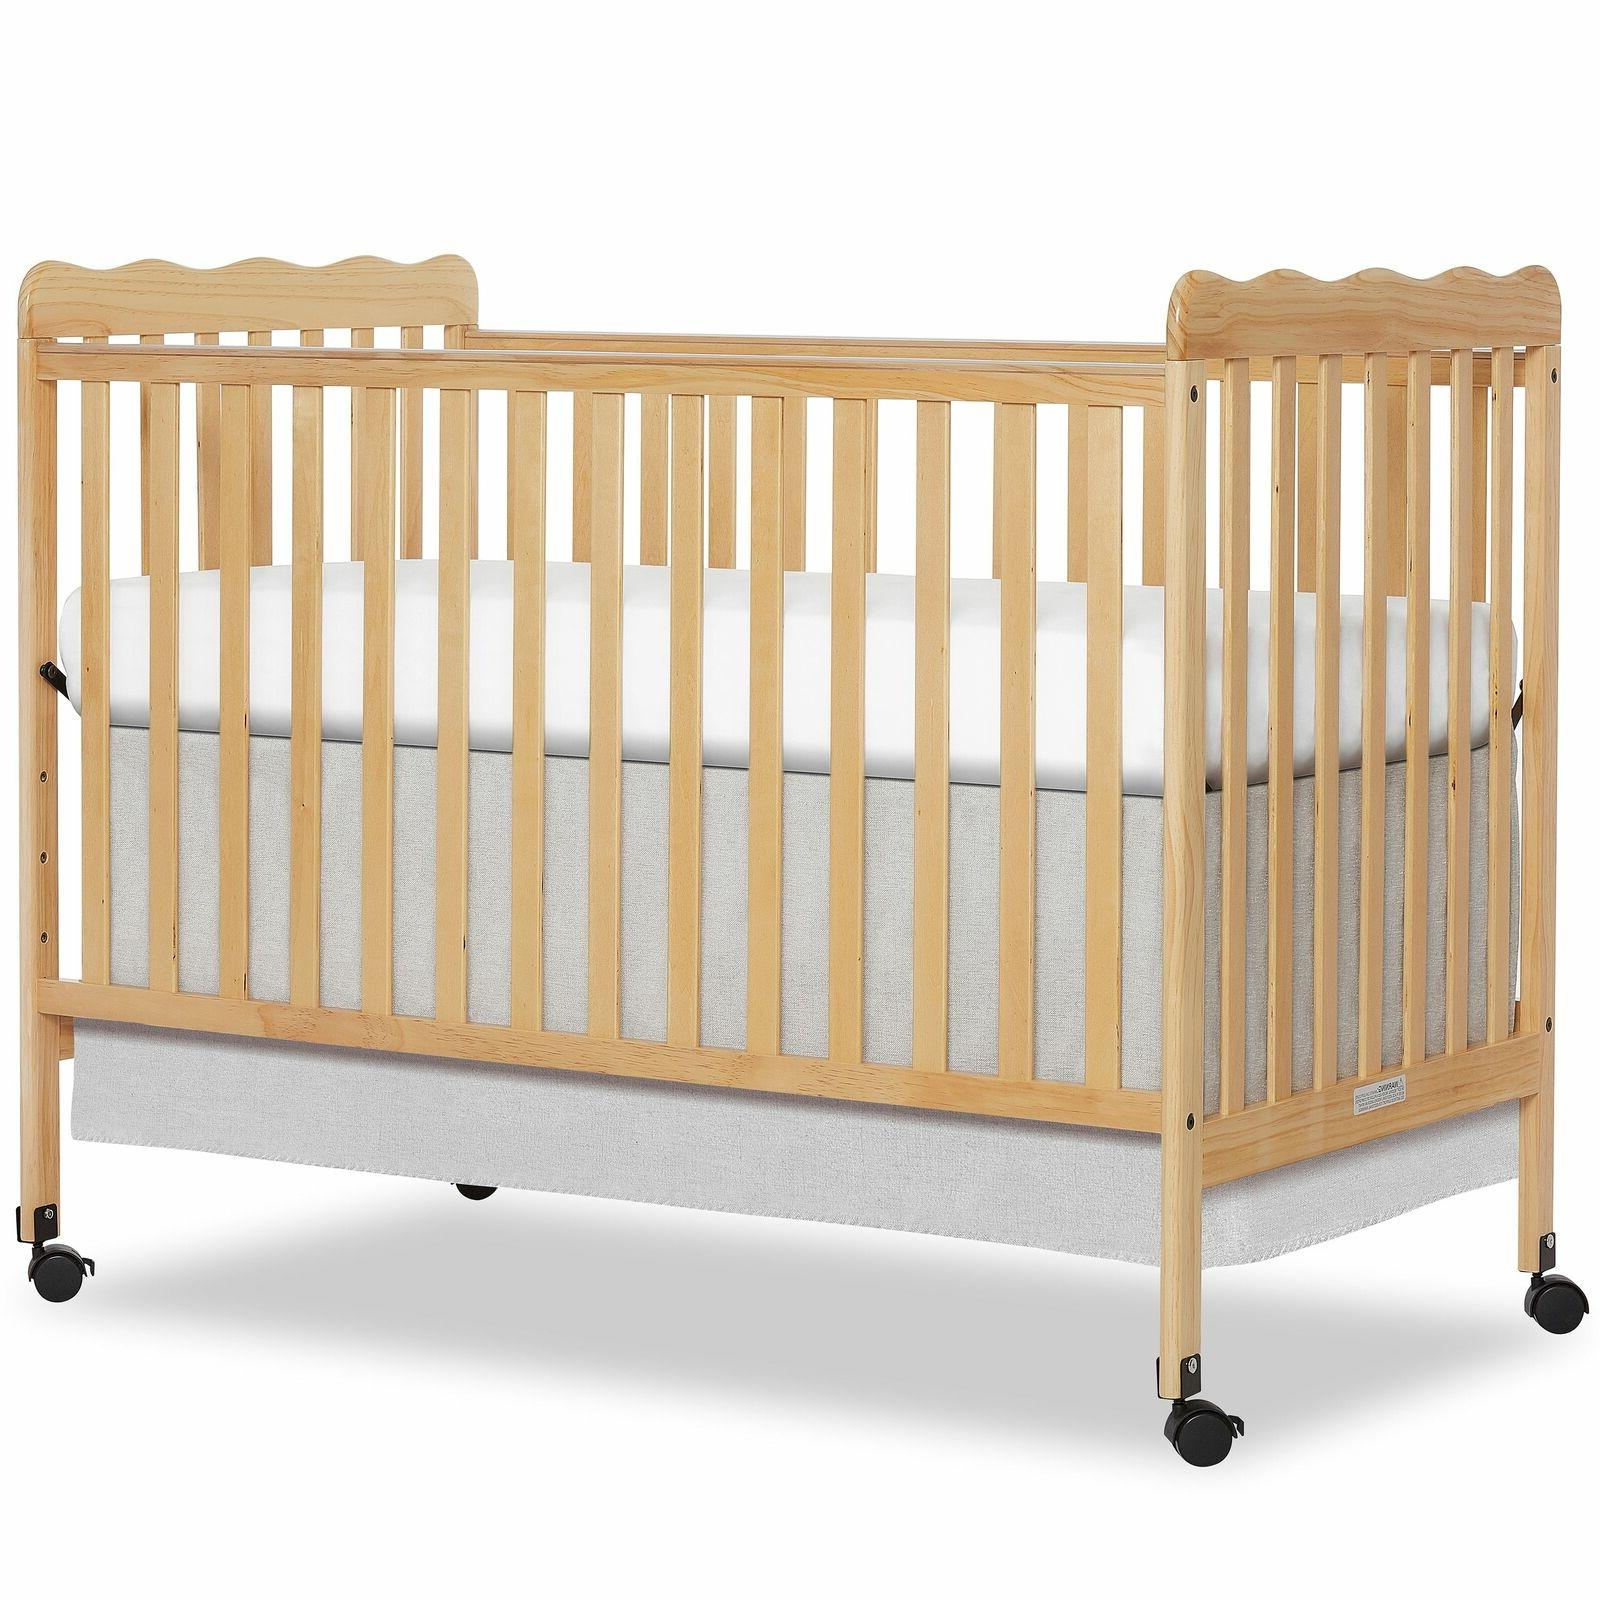 Convertible Baby Crib Nursery Day Bed Infant Playpen Toddler Mobile